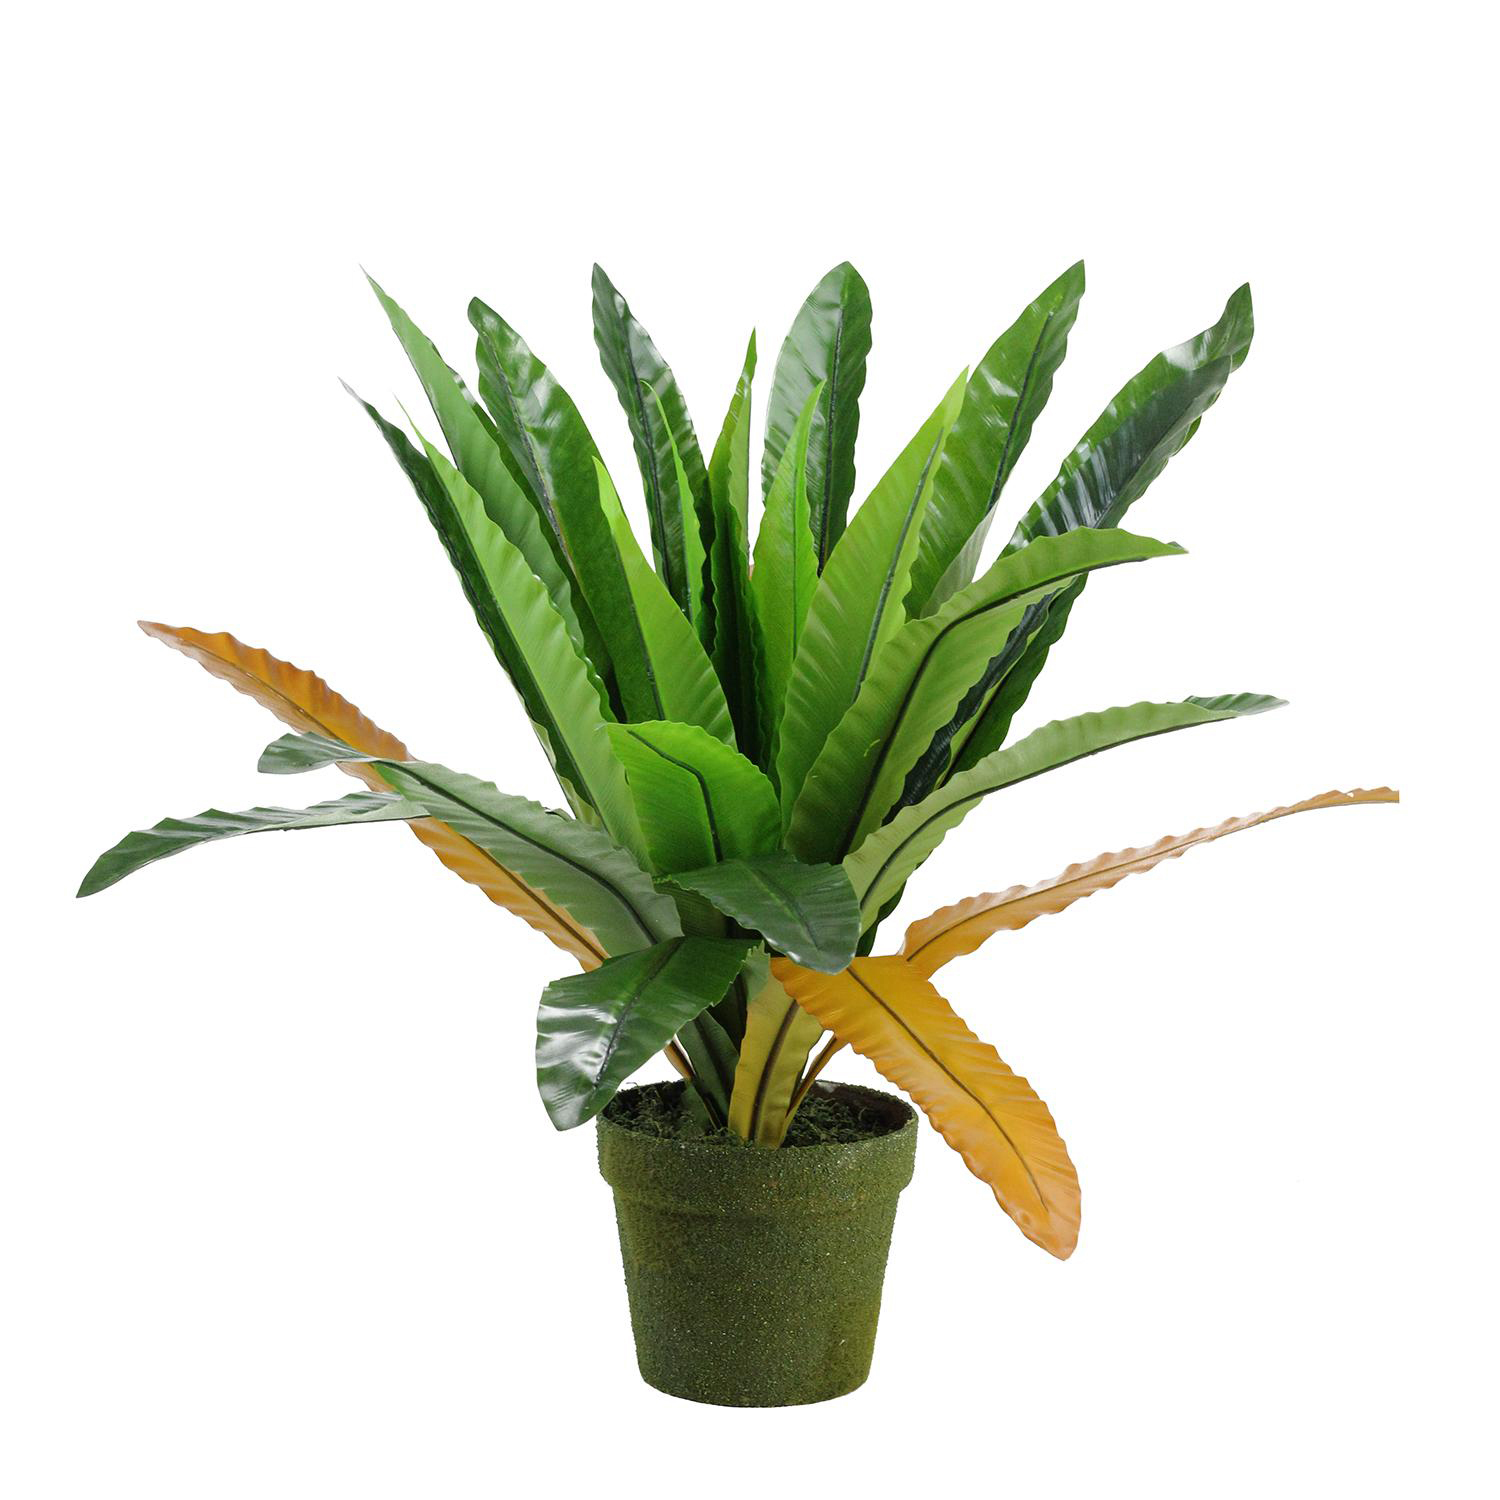 Faux Green & Brown Potted Fern Plant